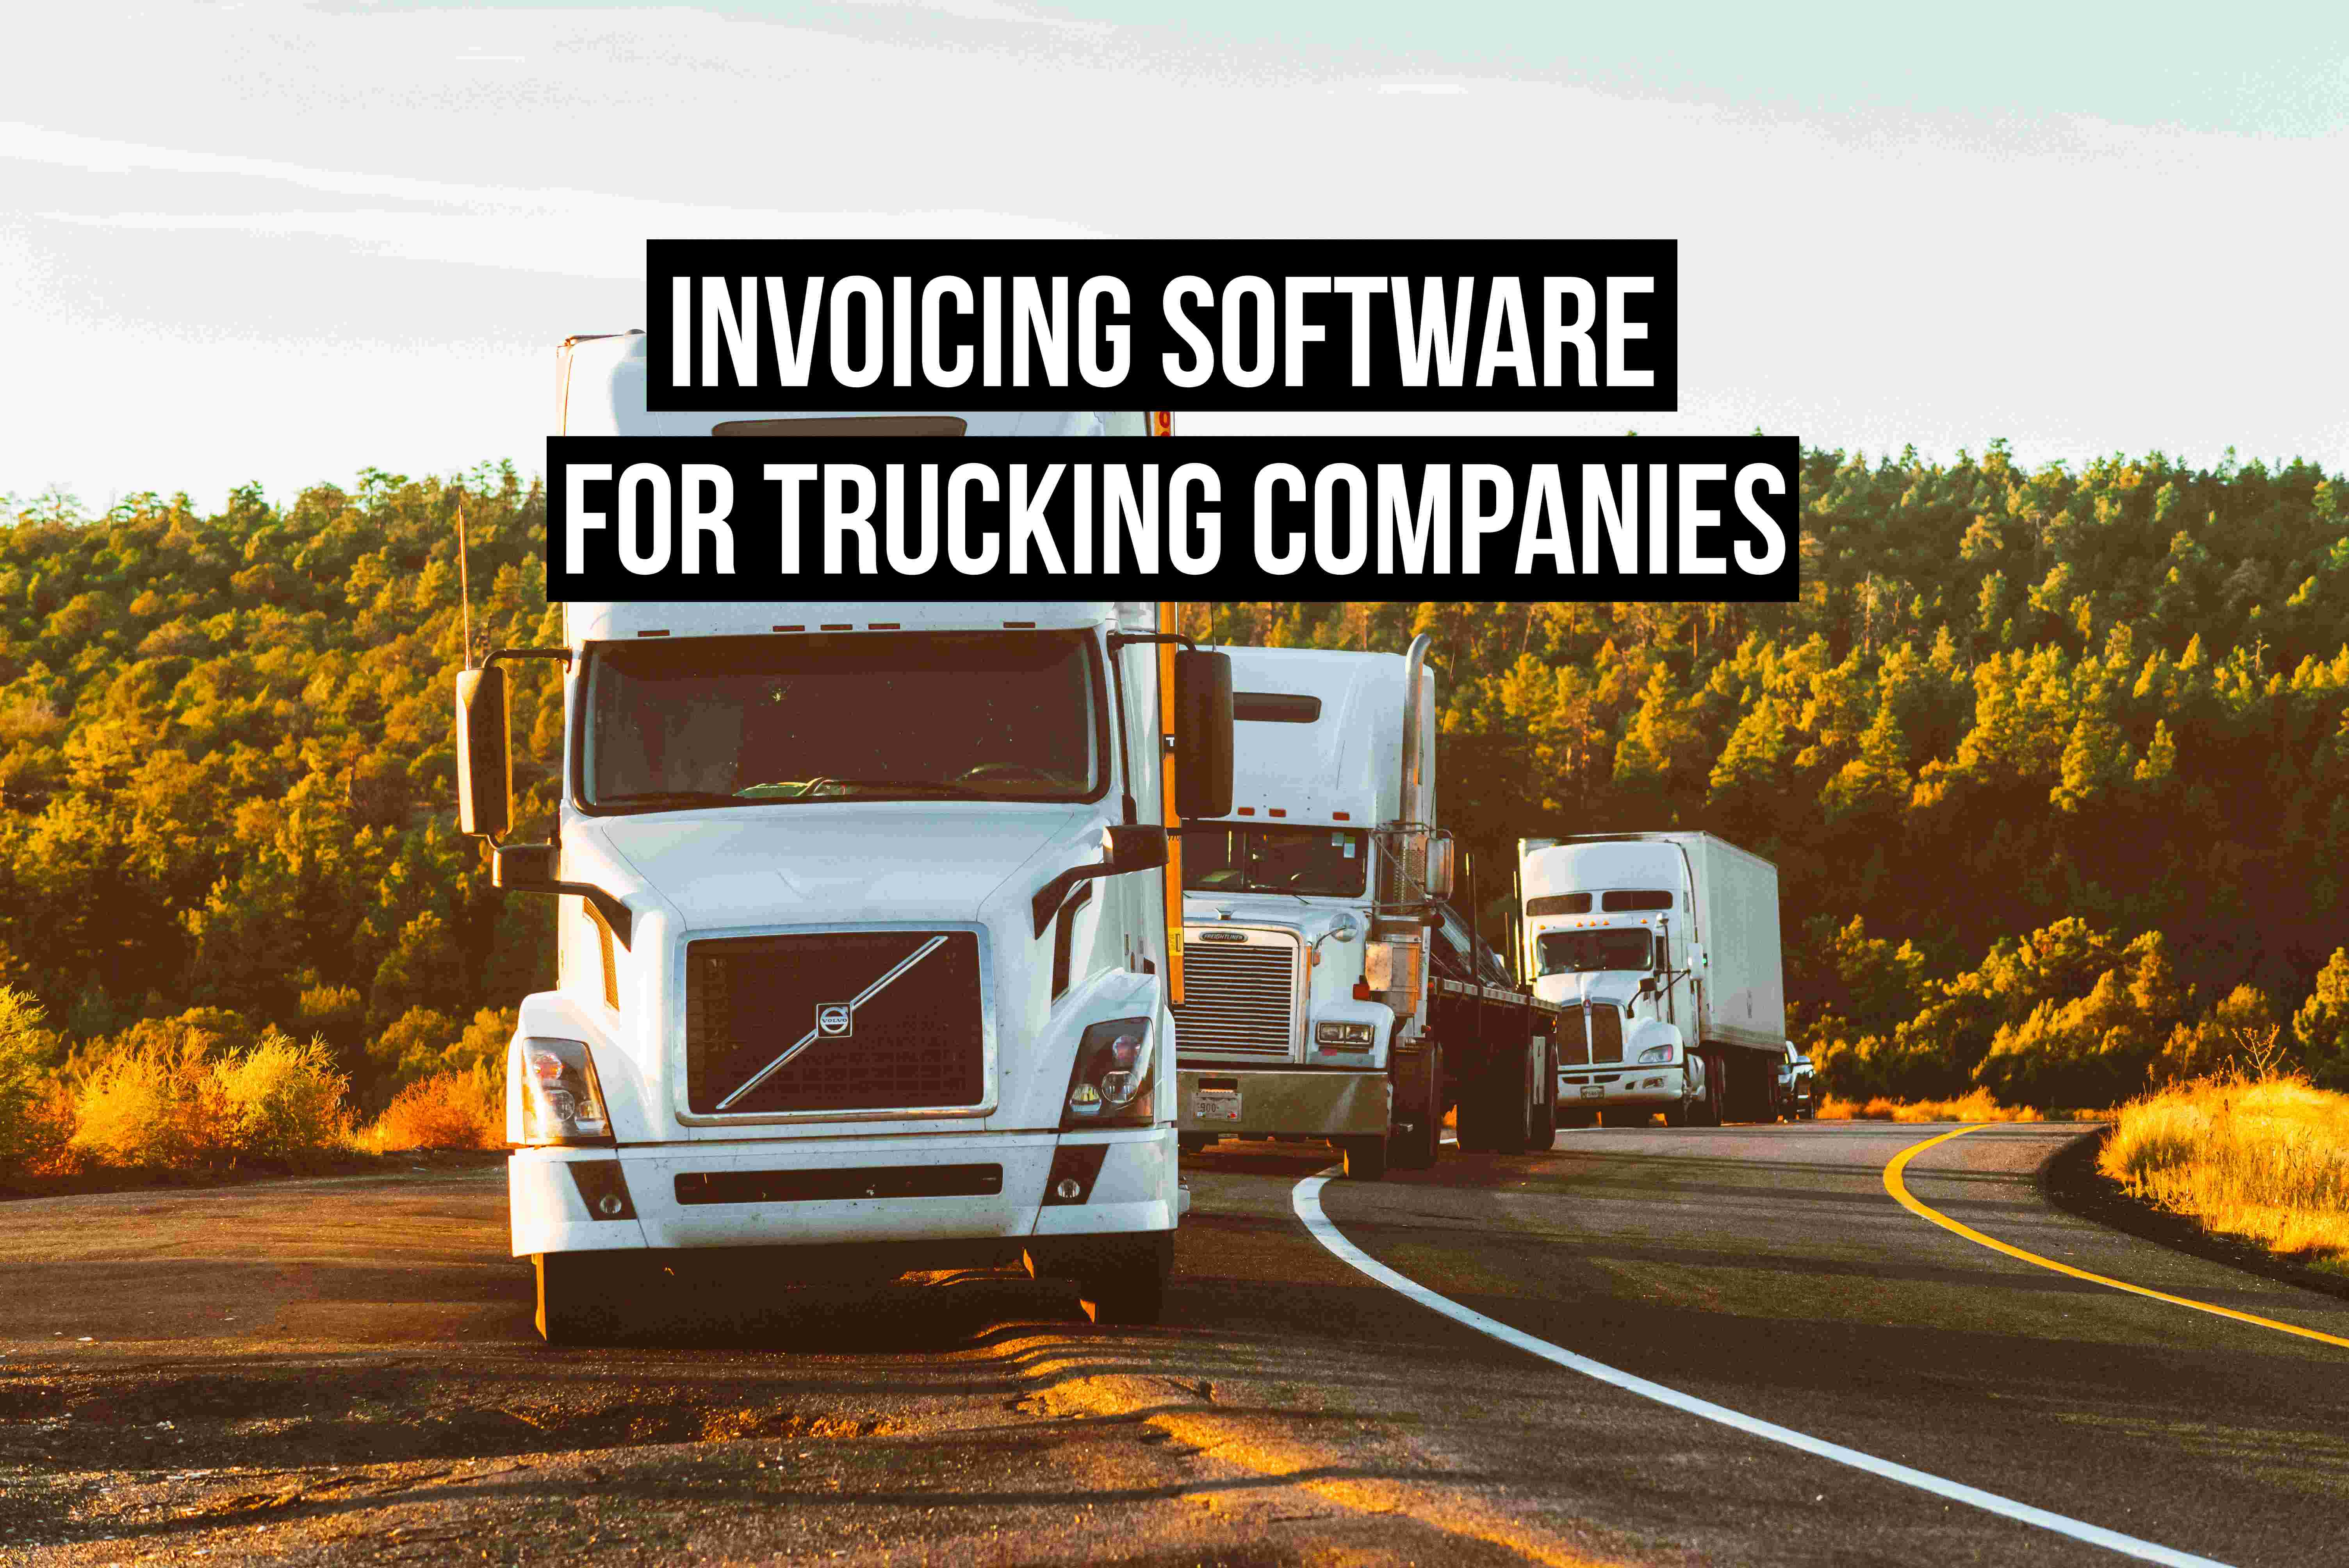 Invoicing software for trucking companies